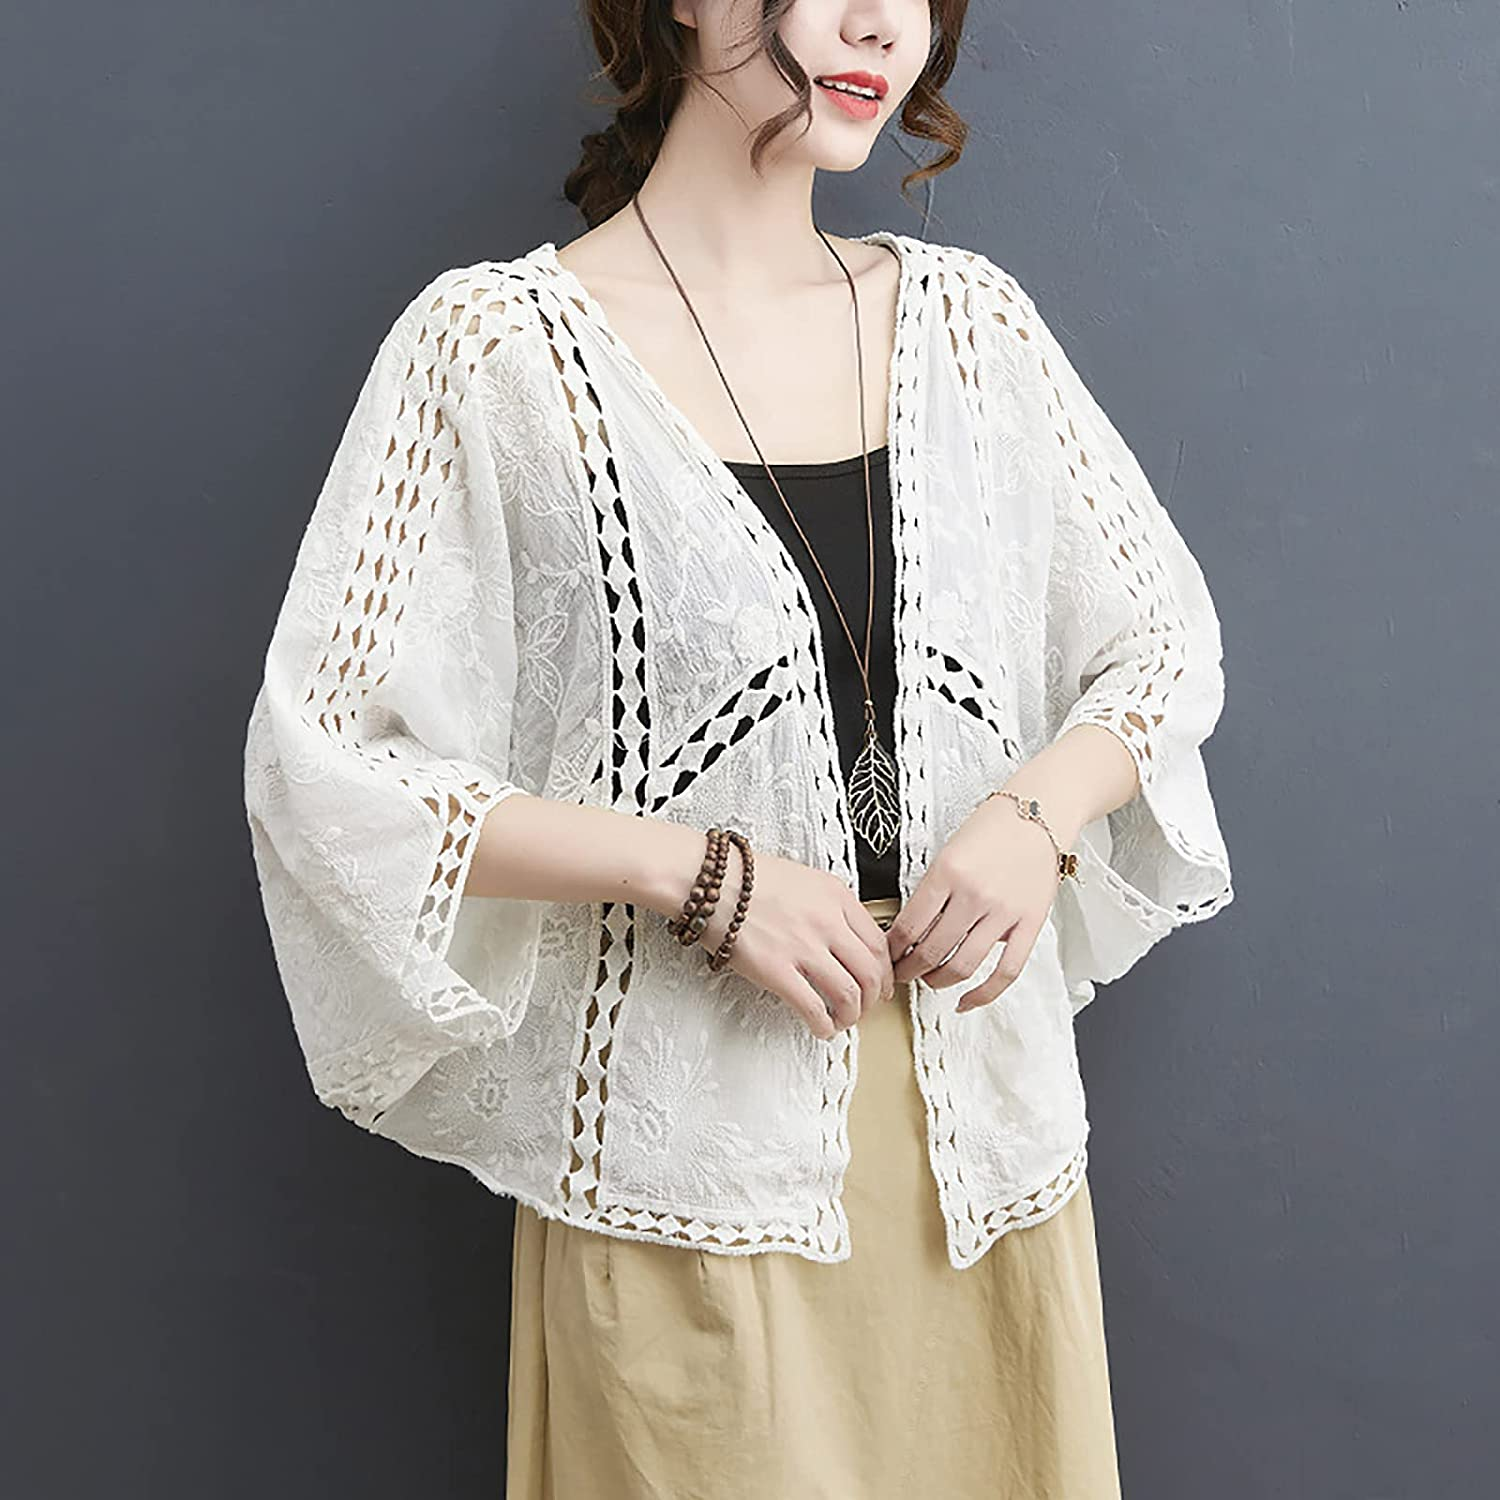 PEHMEA Womens Open Front Knit Cardigans 3/4 Sleeve Hollow Out Crochet Shrug Blouse